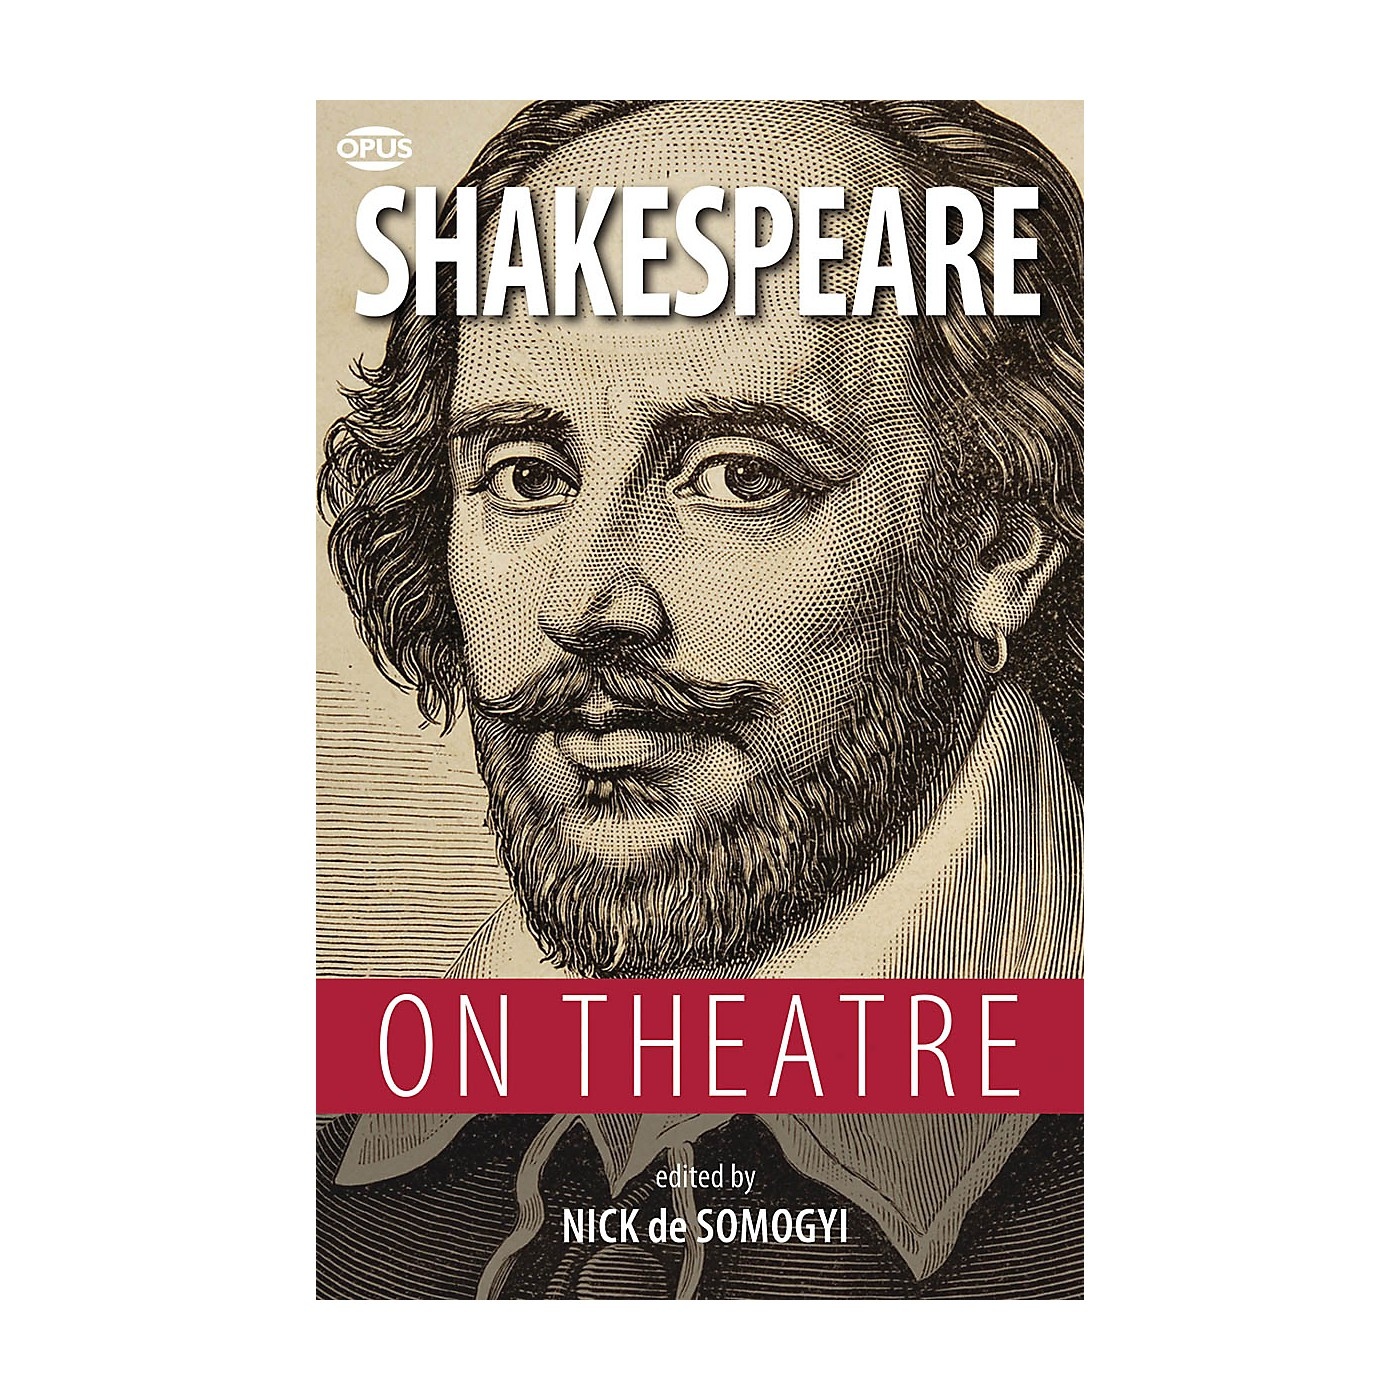 Opus Shakespeare on Theatre Book Series Softcover Written by William Shakespeare thumbnail